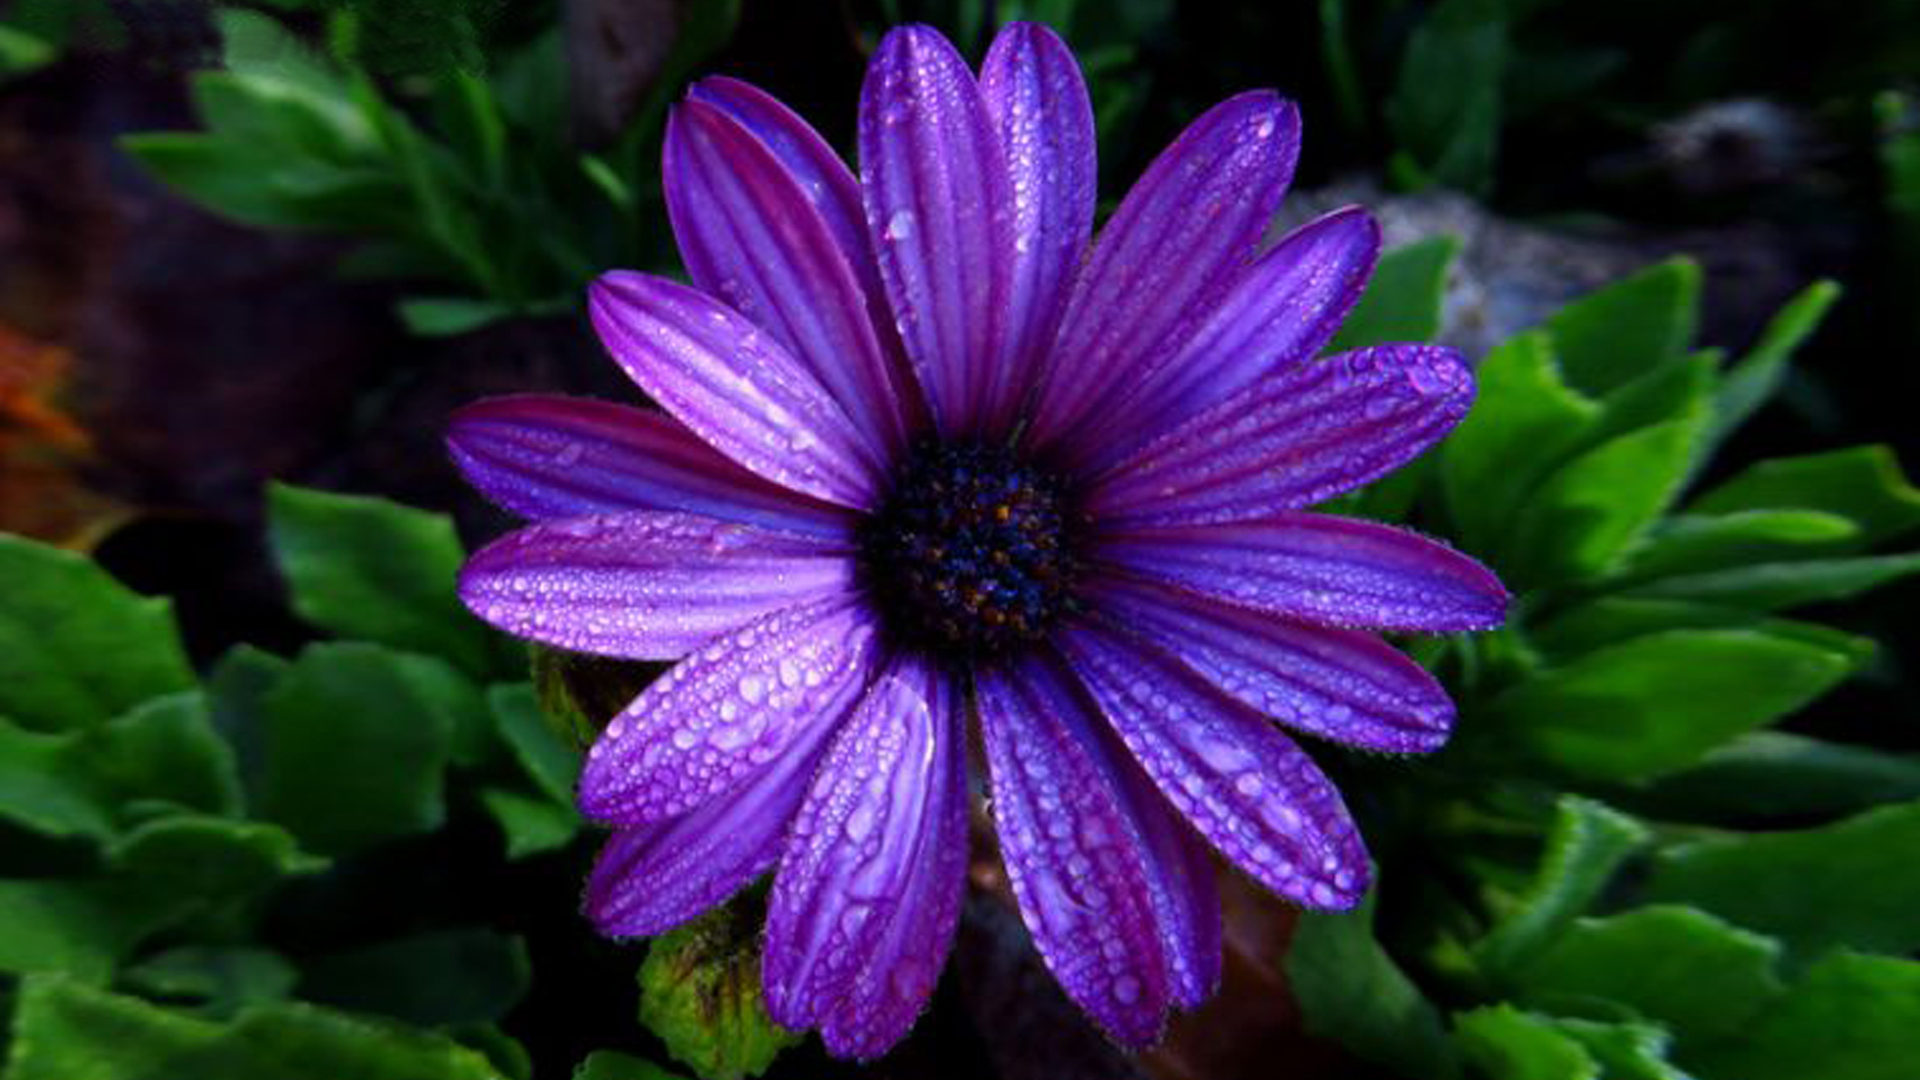 Download Gambar Wallpaper 3d Aster Flower Dark Purple Color With Water Droplets Full Hd